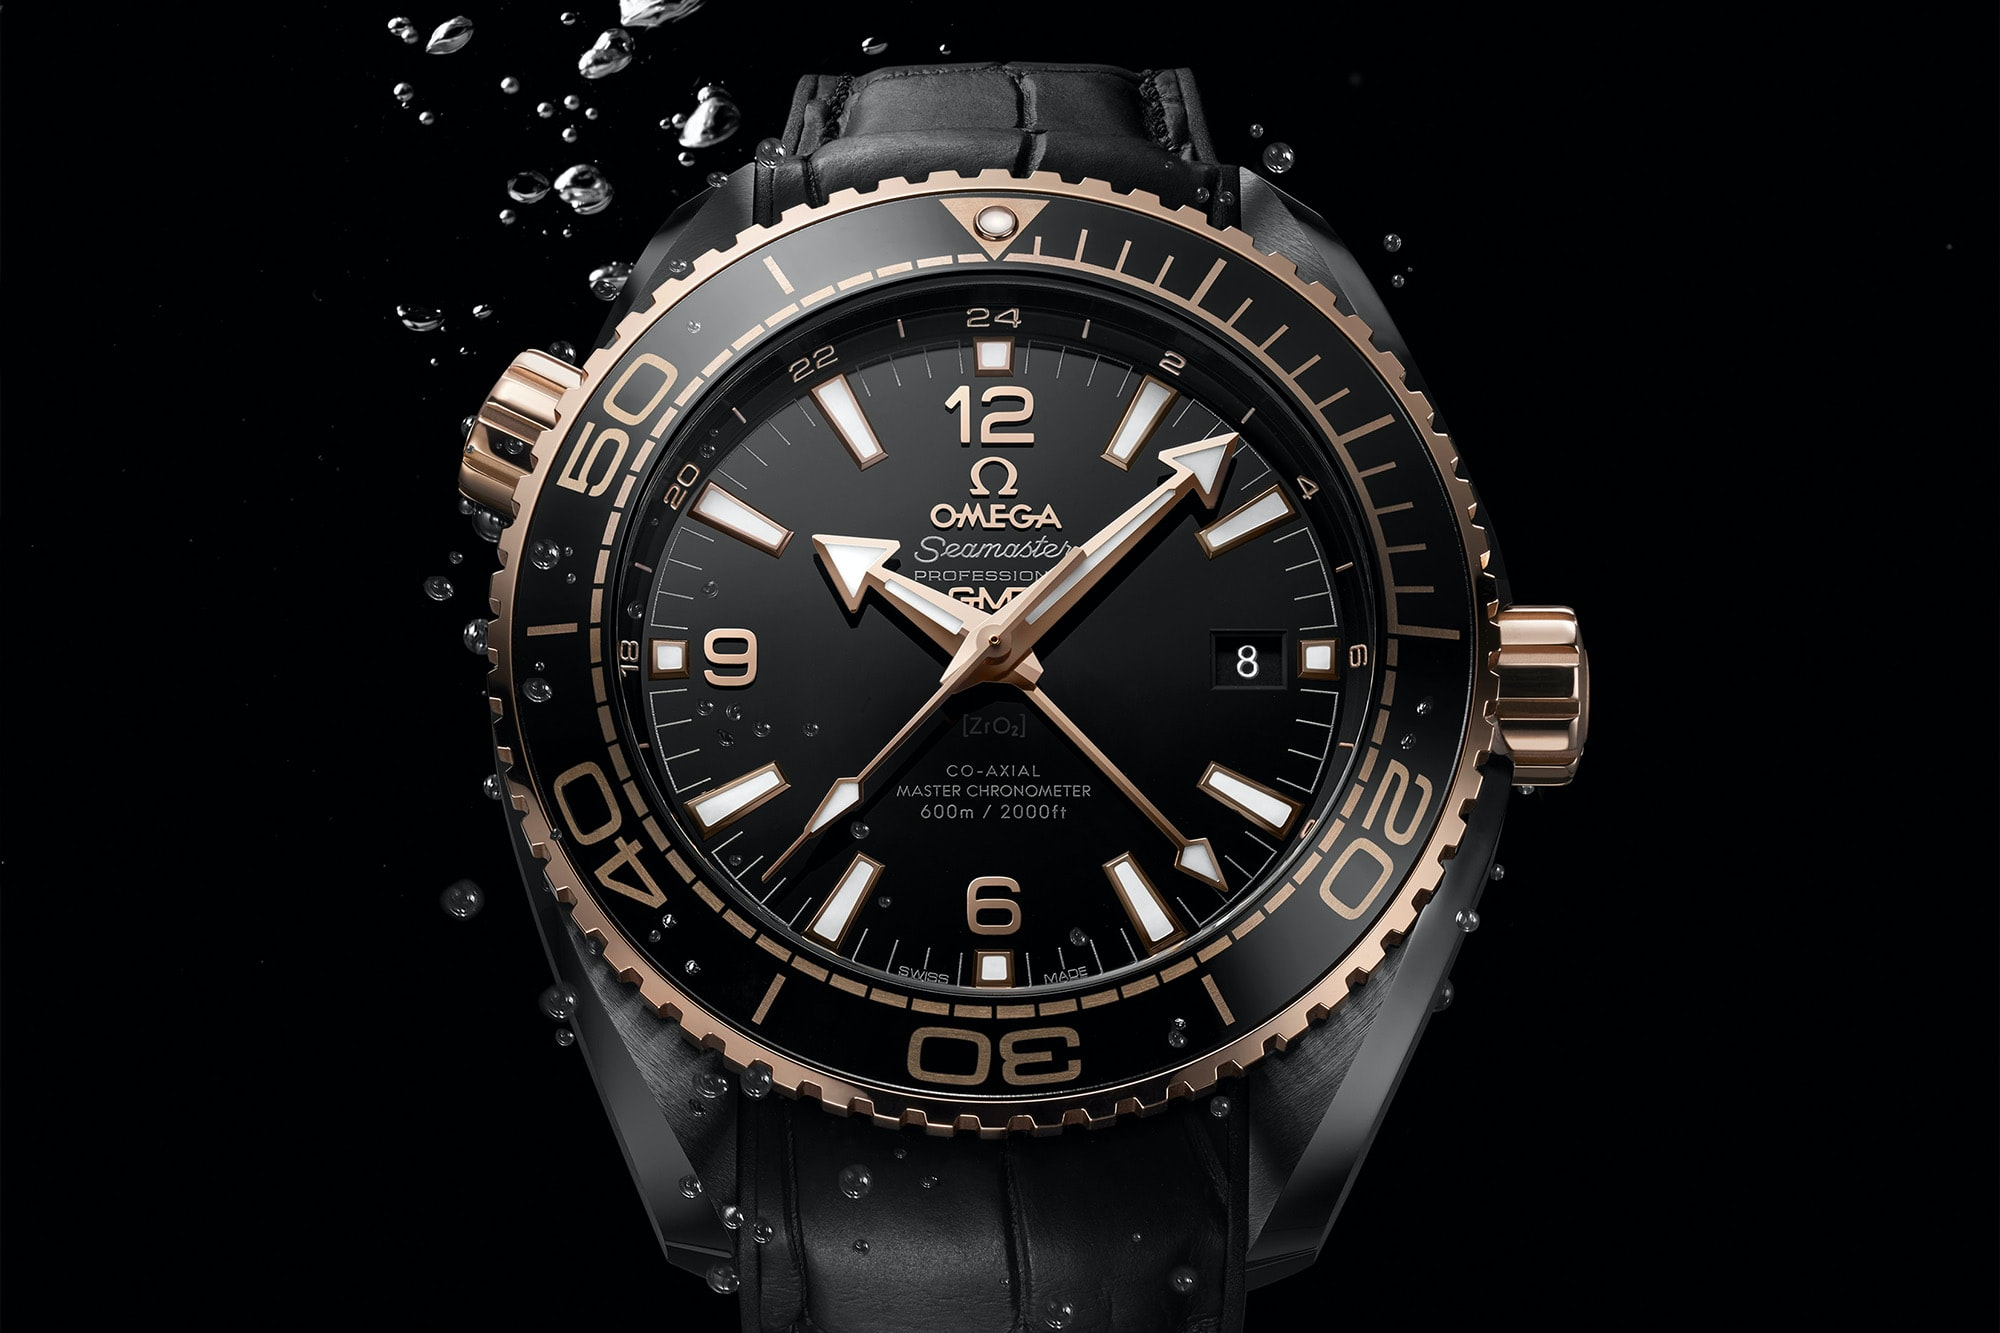 Introducing: The Omega Planet Ocean Deep Black Collection (Full Specs & Official Pricing) Introducing: The Omega Planet Ocean Deep Black Collection (Full Specs & Official Pricing) 6